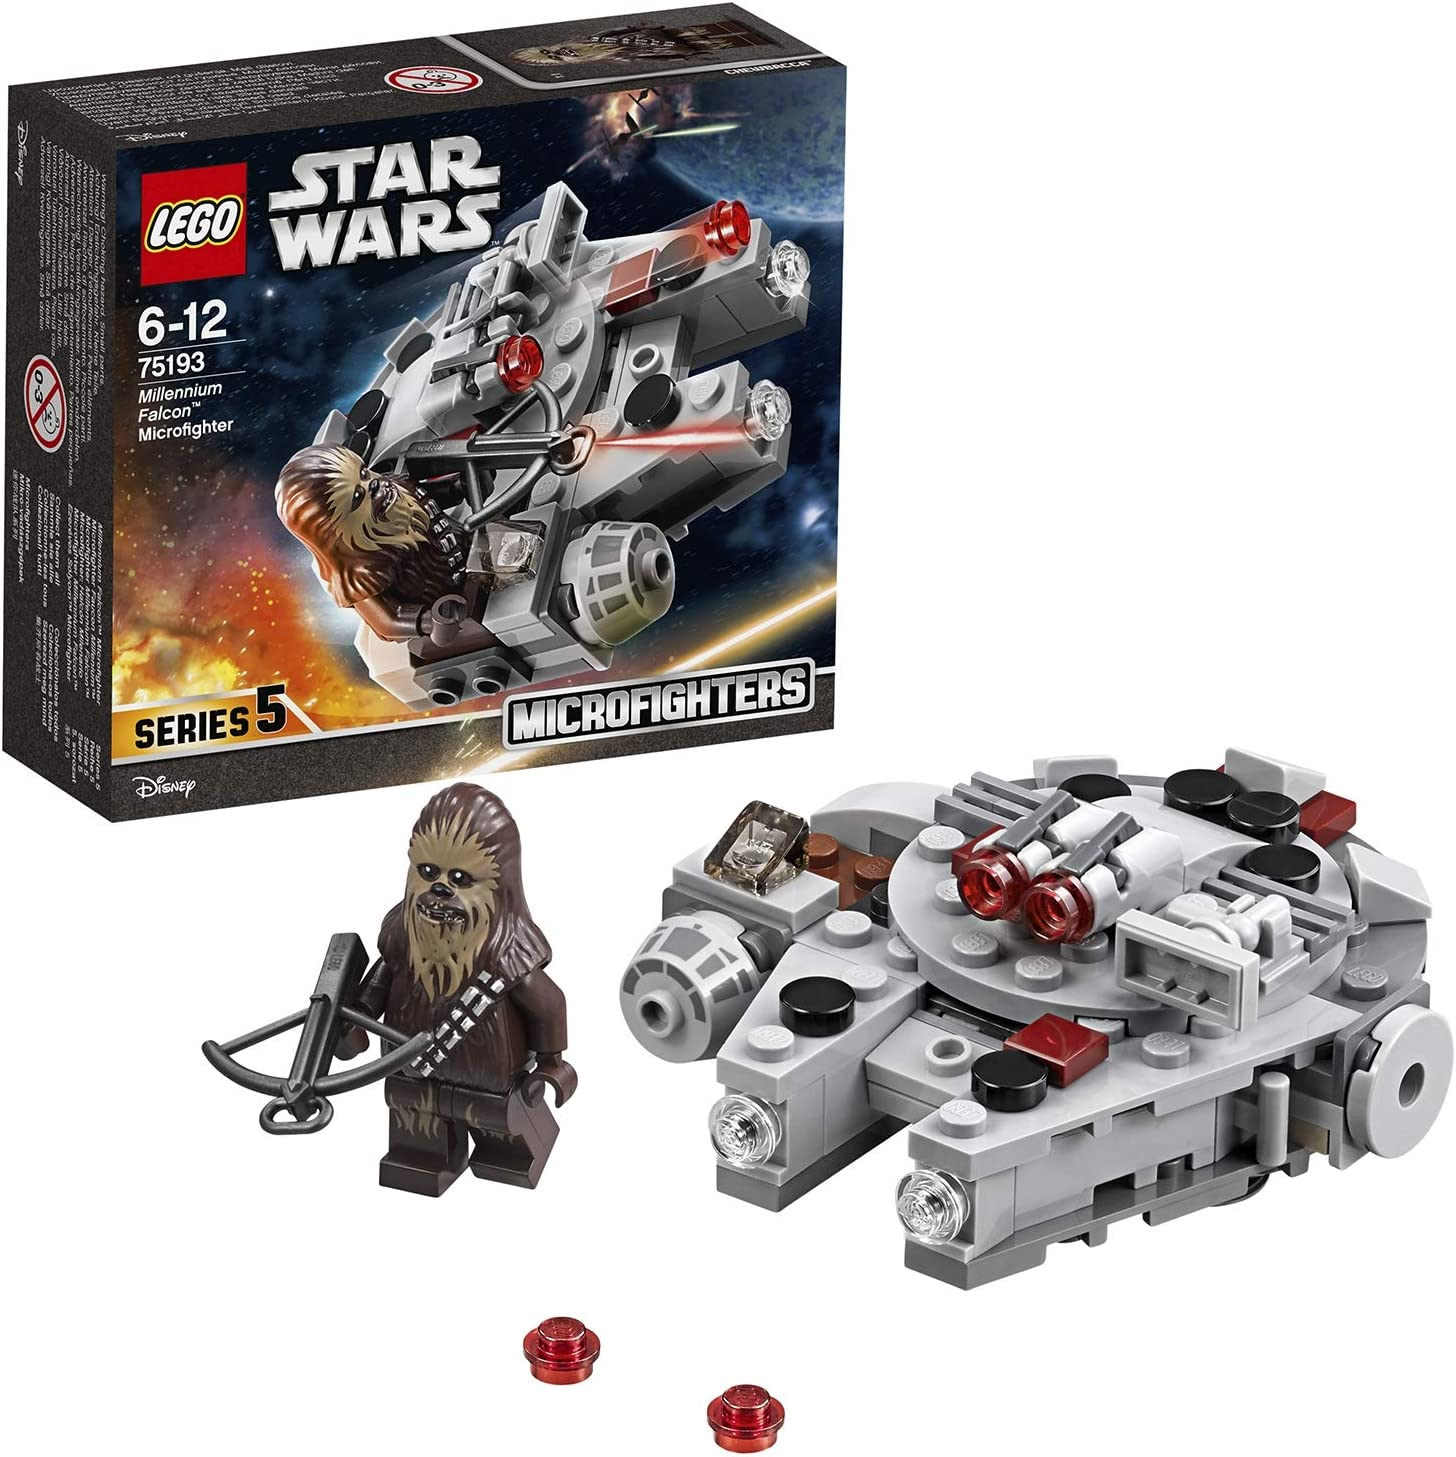 LEGO Star Wars Millennium Falcon Microfighter Star Wars Toy